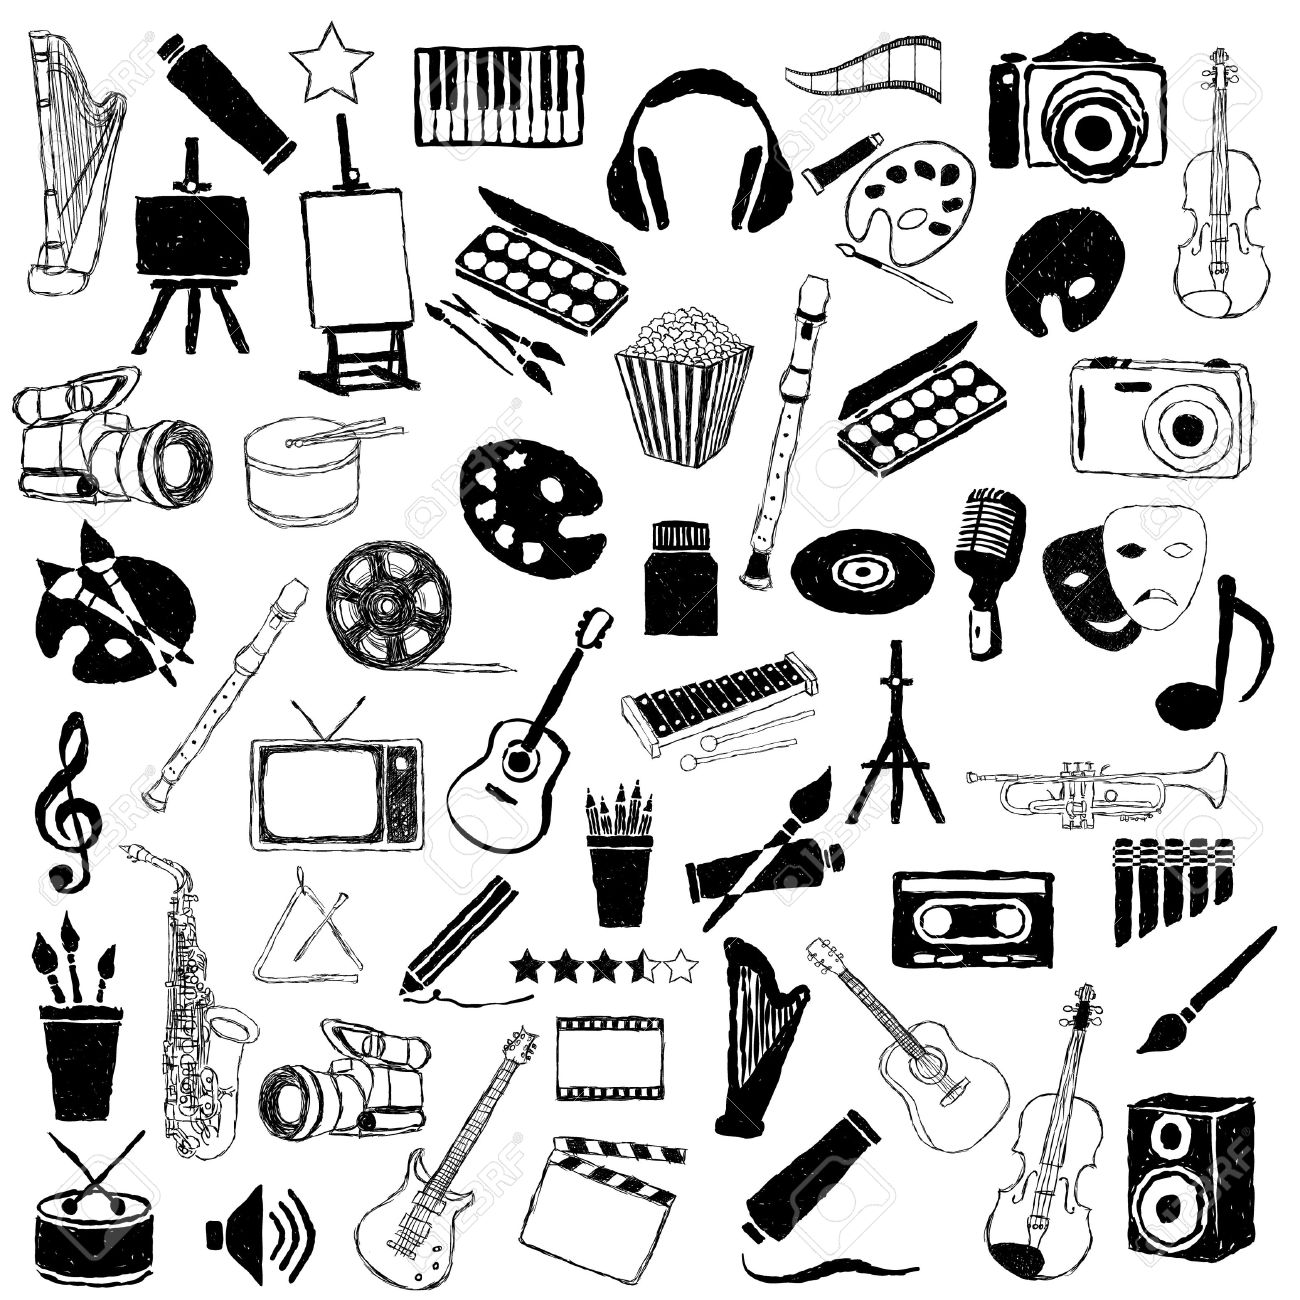 big doodle art pictures collection - 16246333